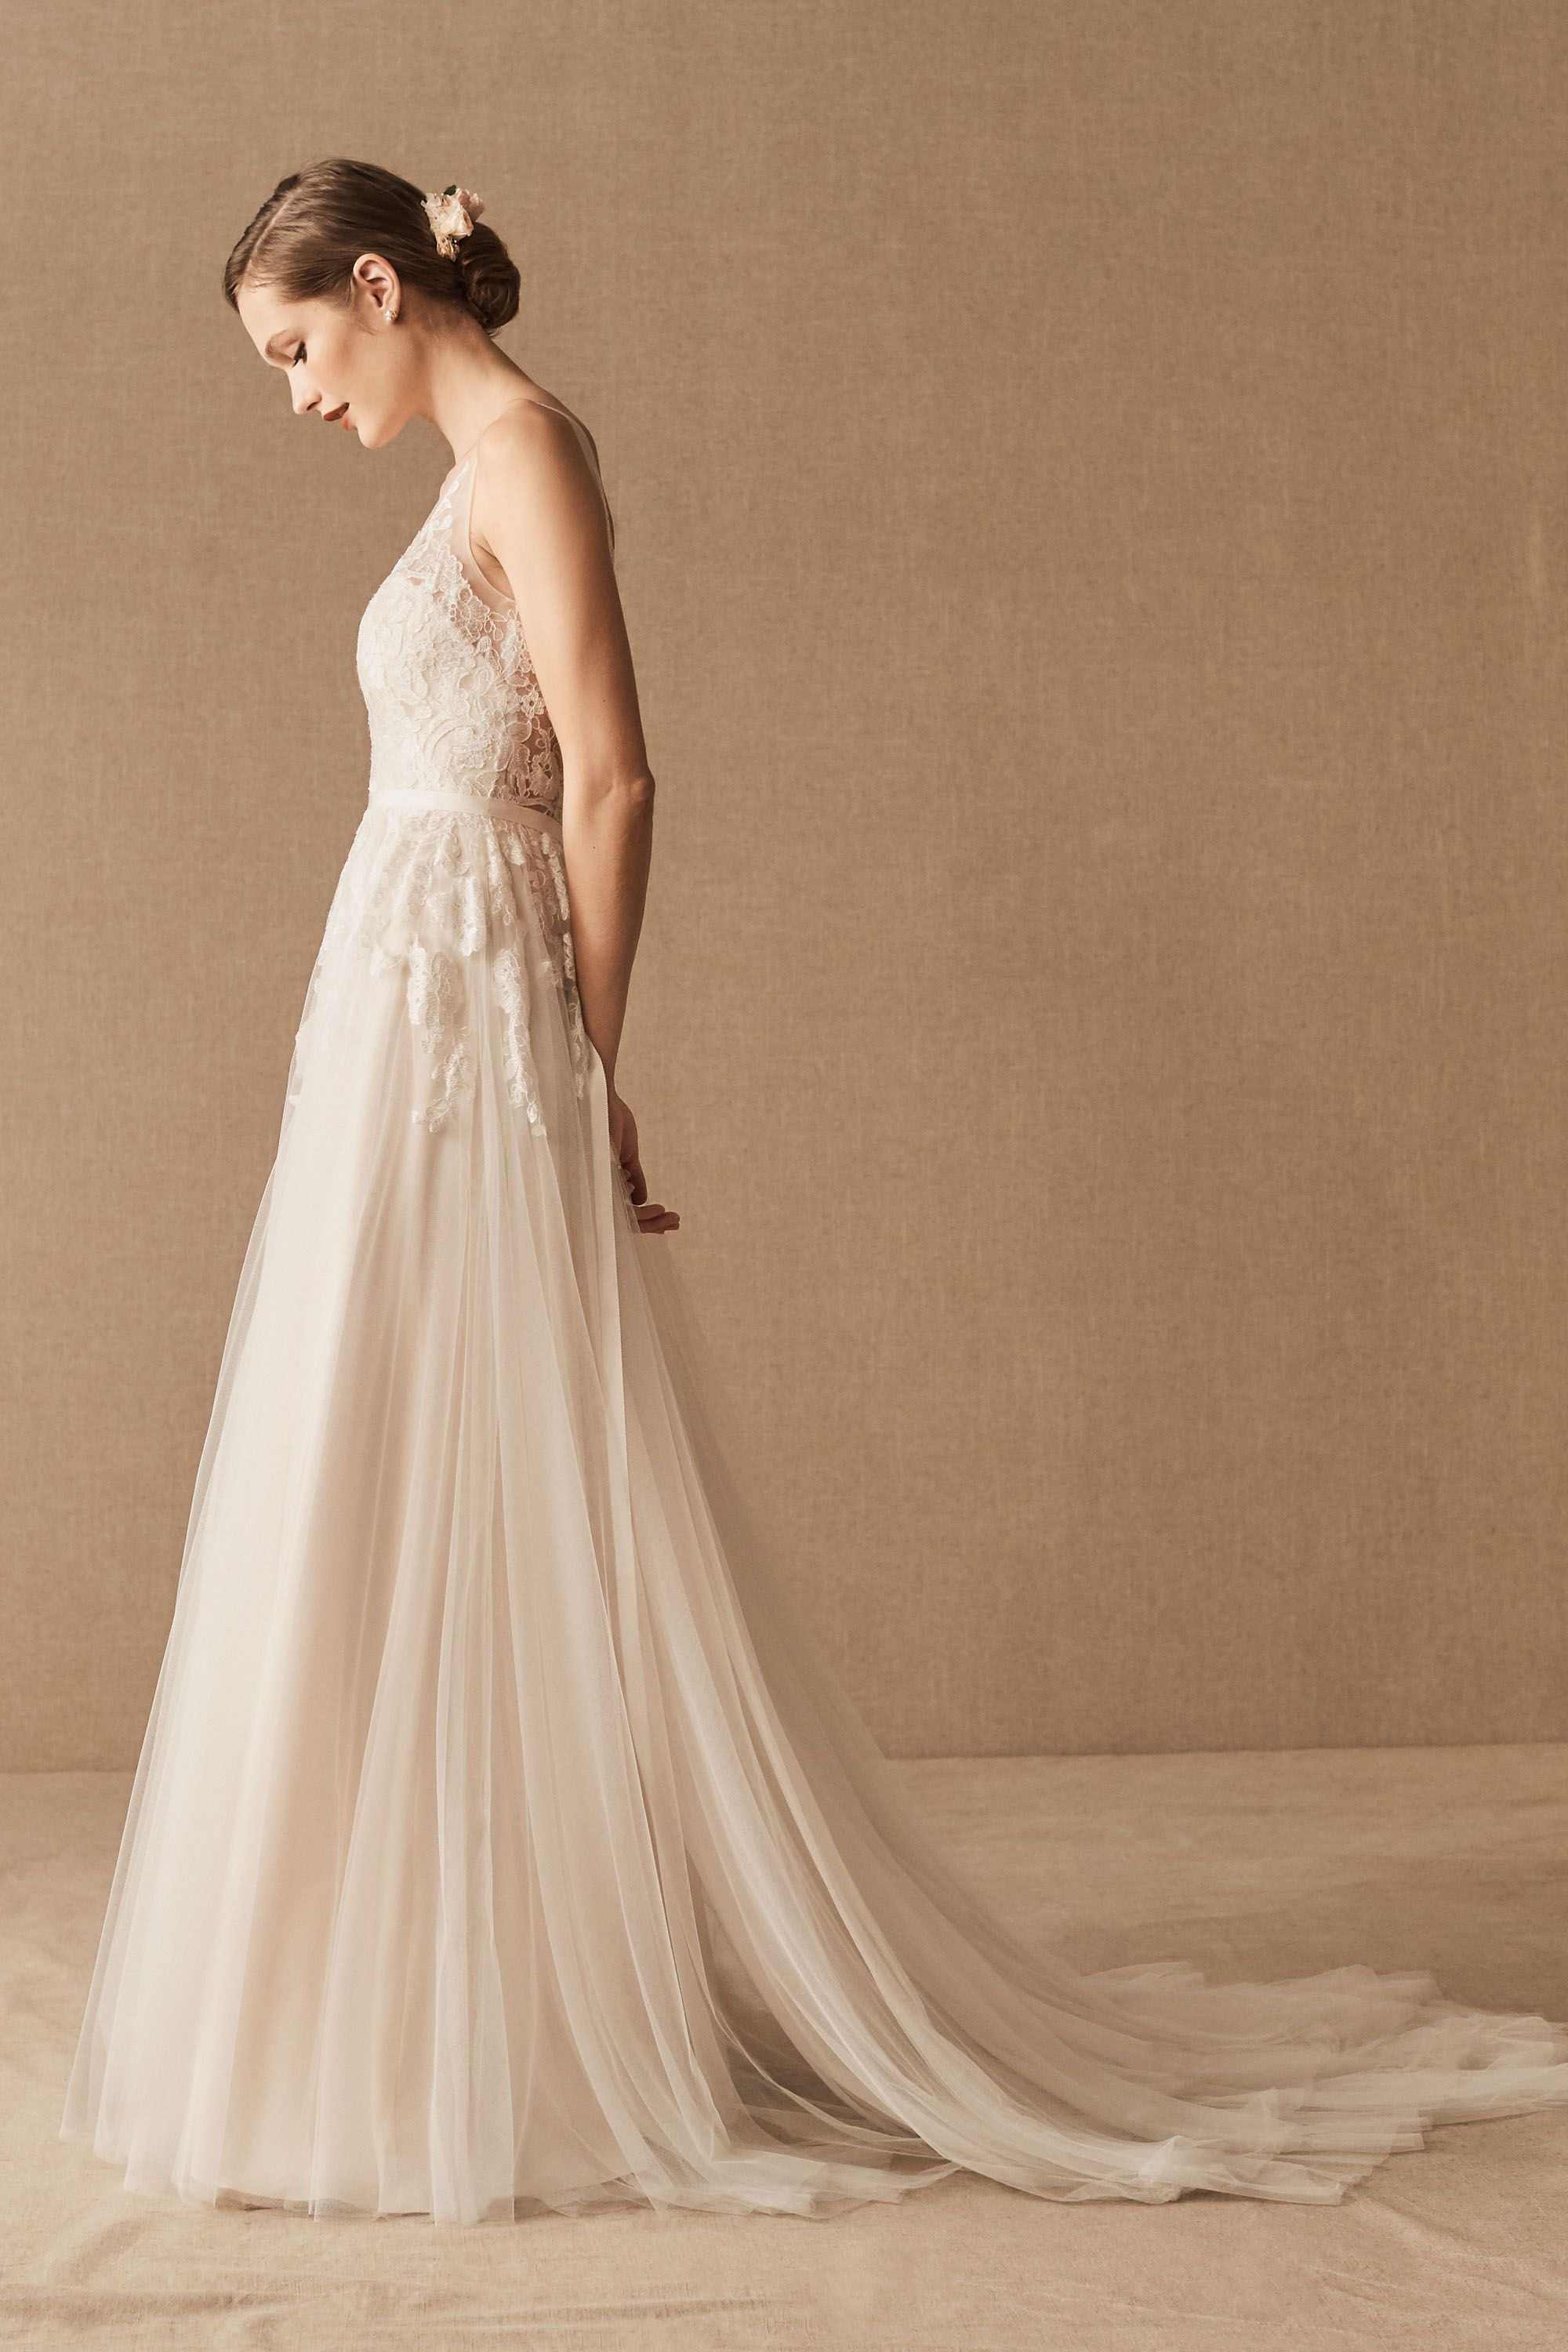 Reagan Gown | Where to Buy BHLDN Wedding Dresses